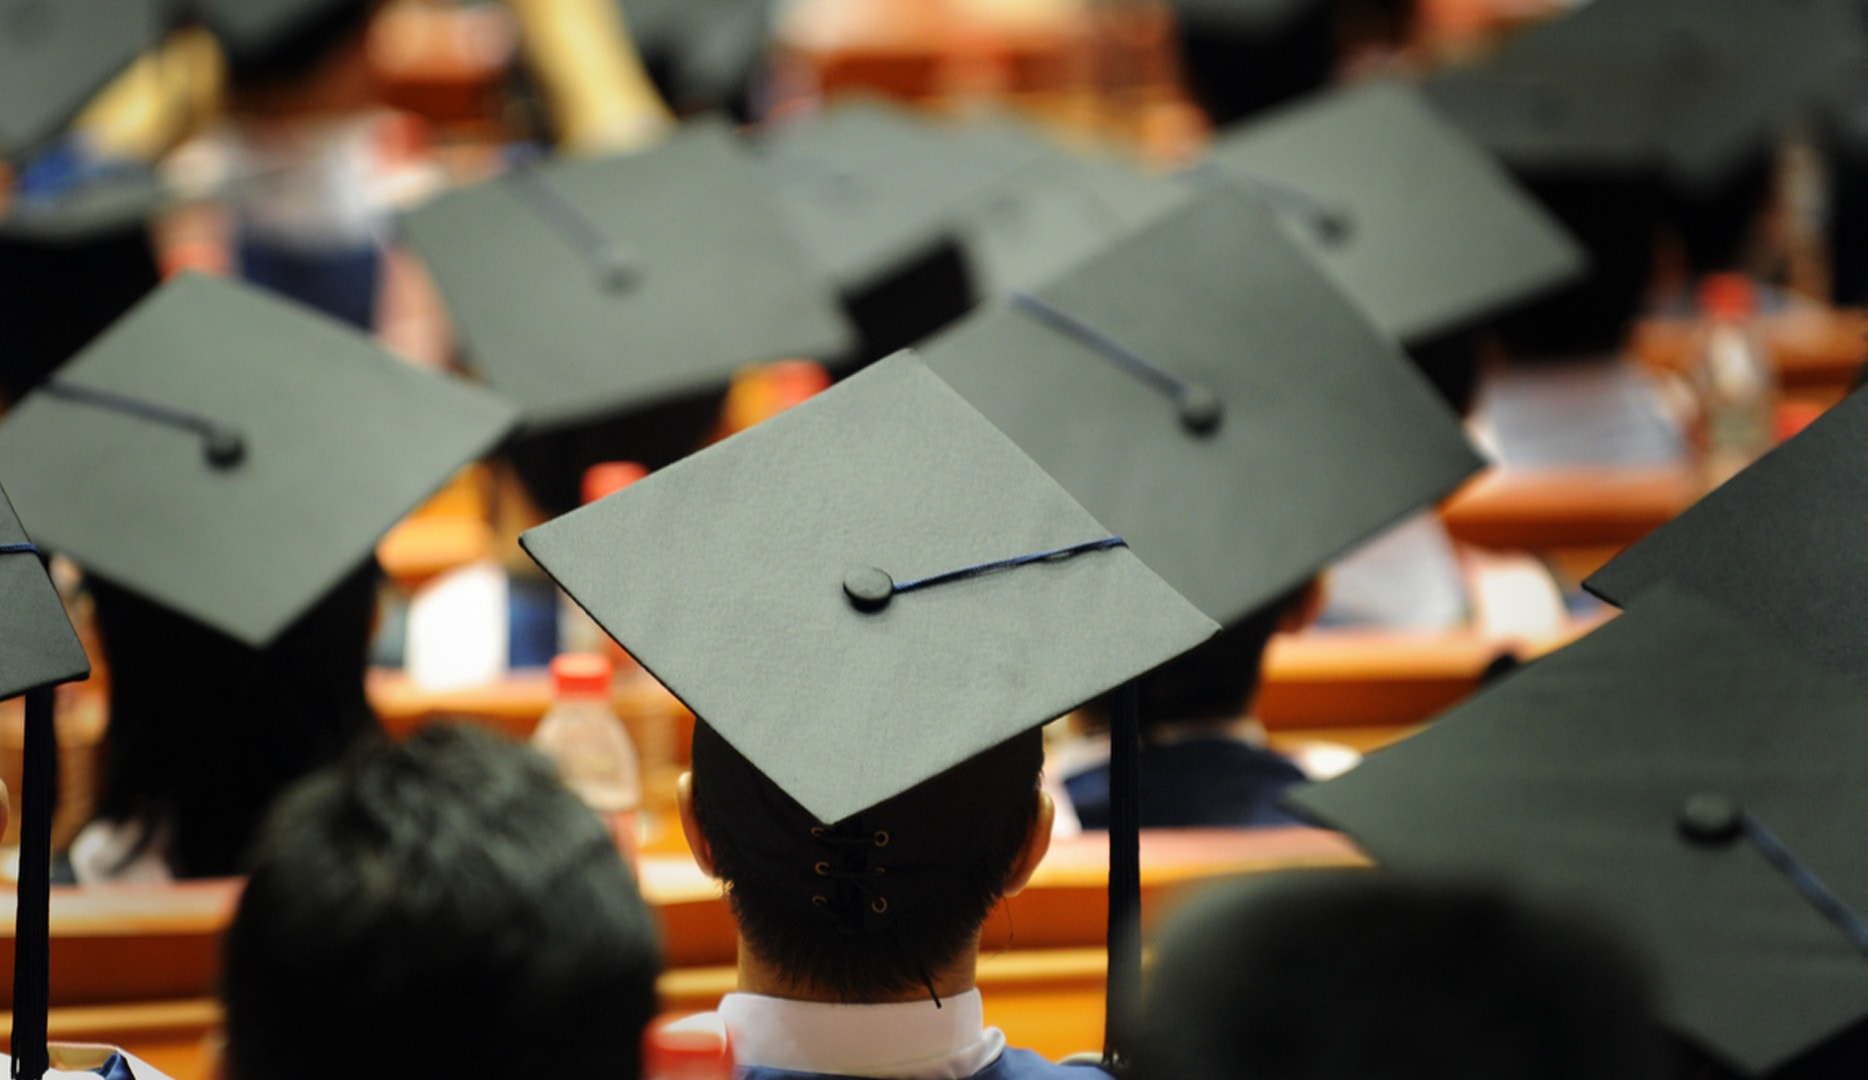 How to Attract & Hire Recent Graduates